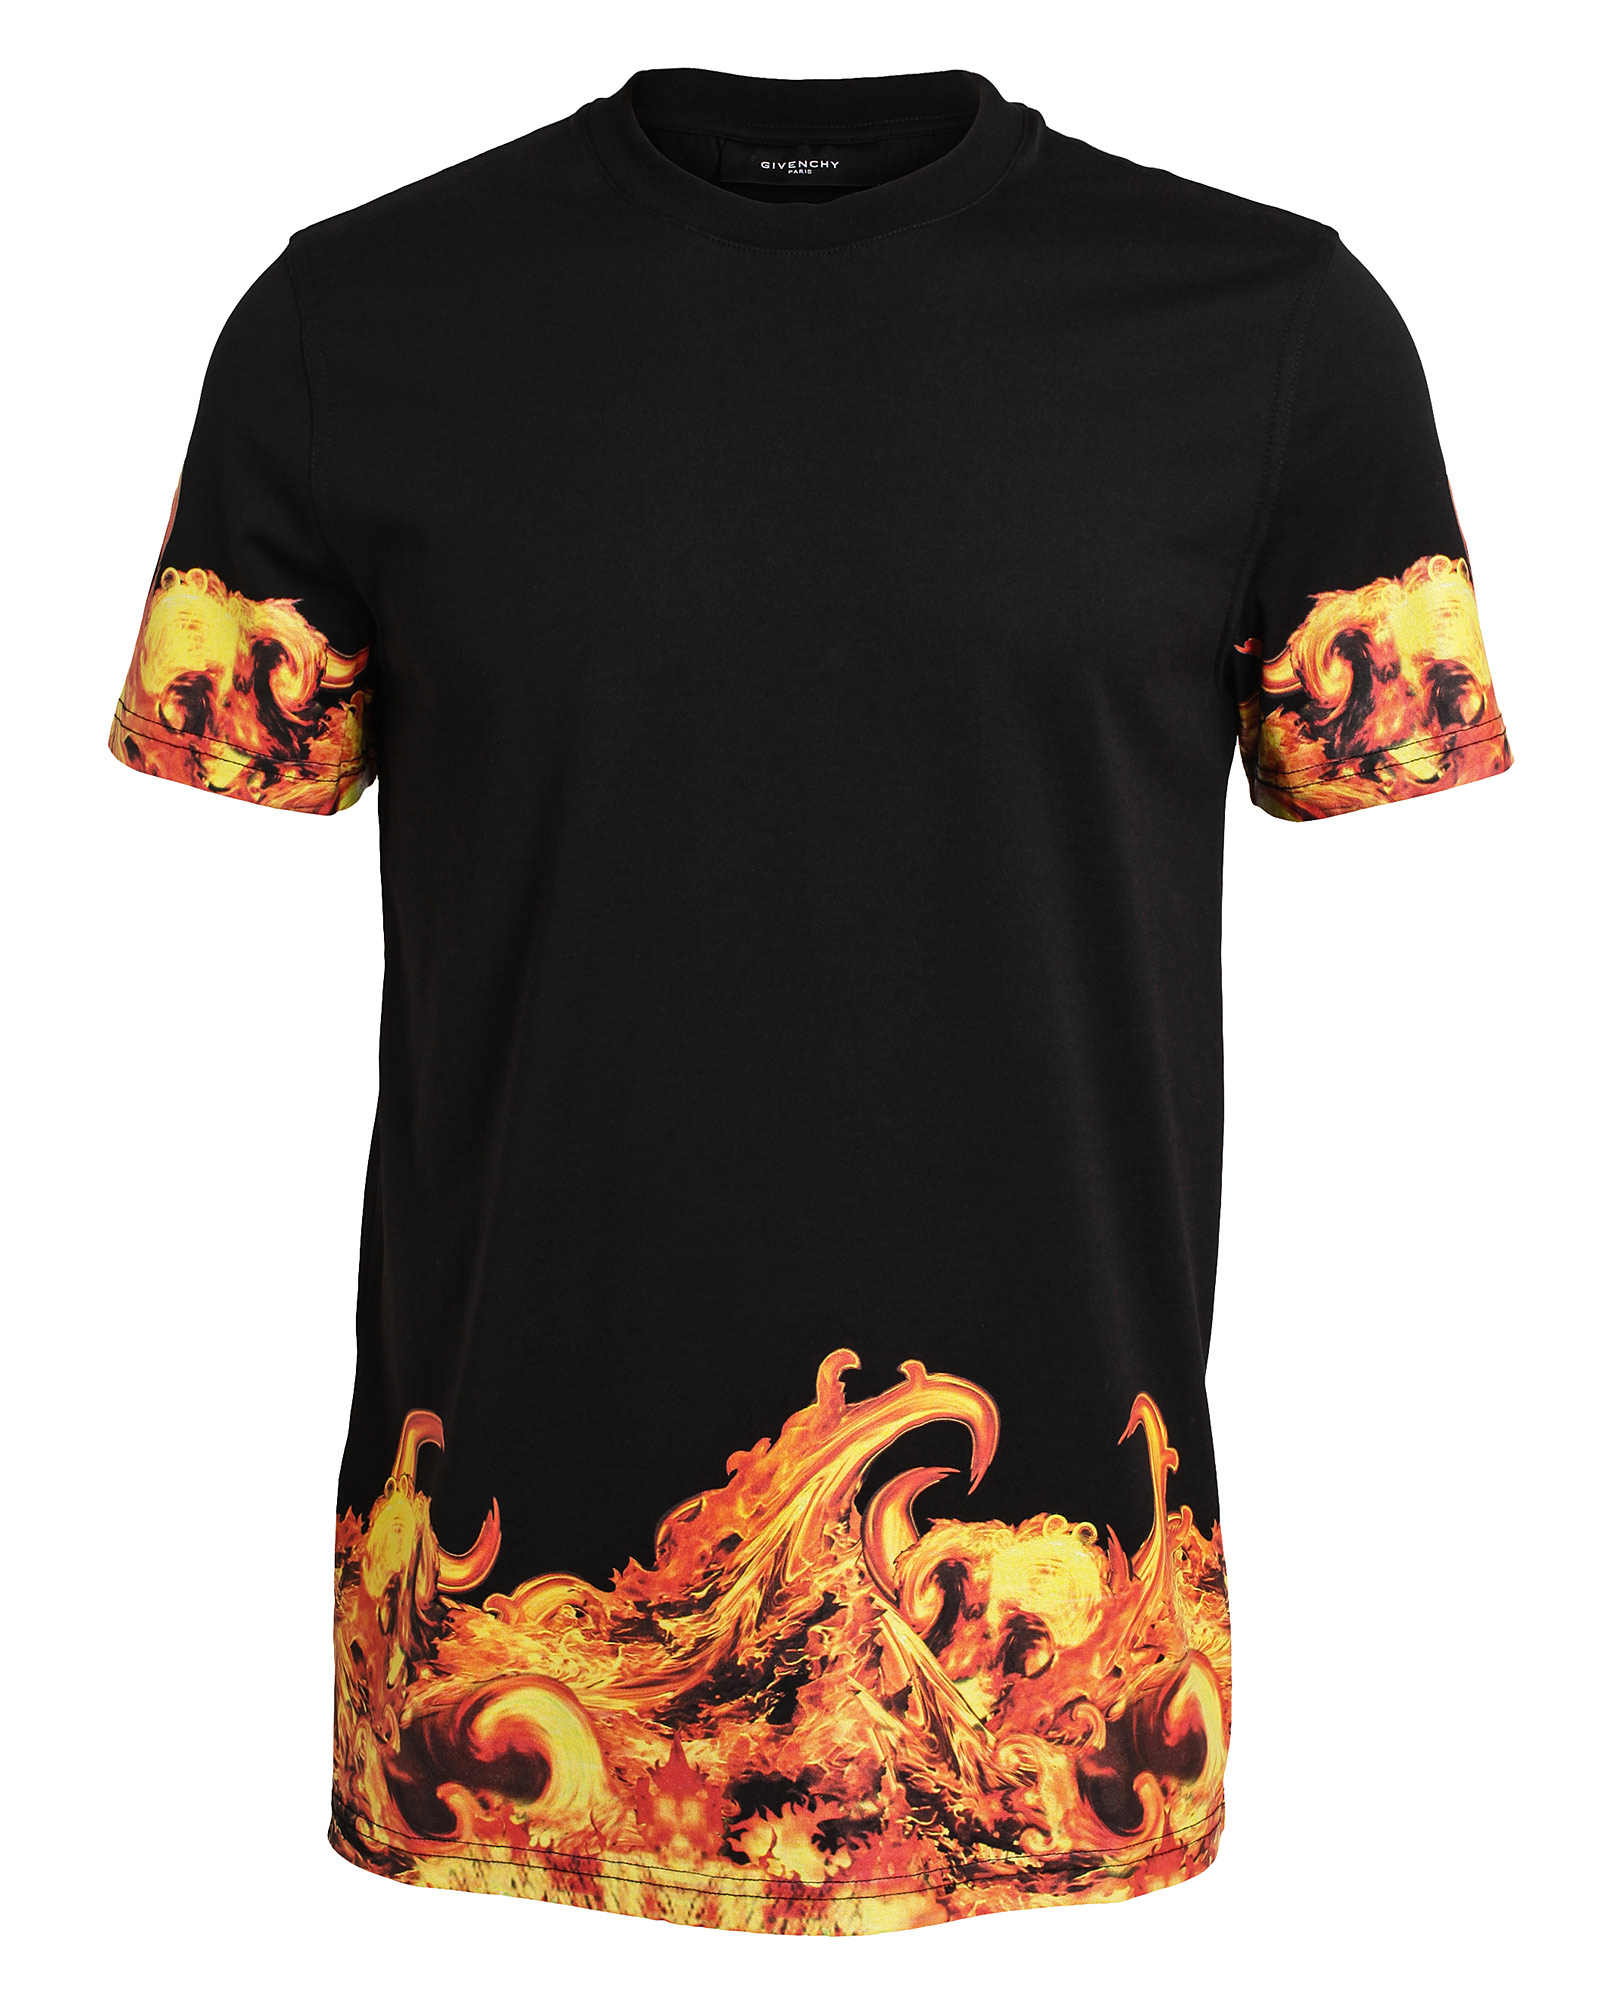 givenchy flame printed cotton tshirt in black for men lyst. Black Bedroom Furniture Sets. Home Design Ideas